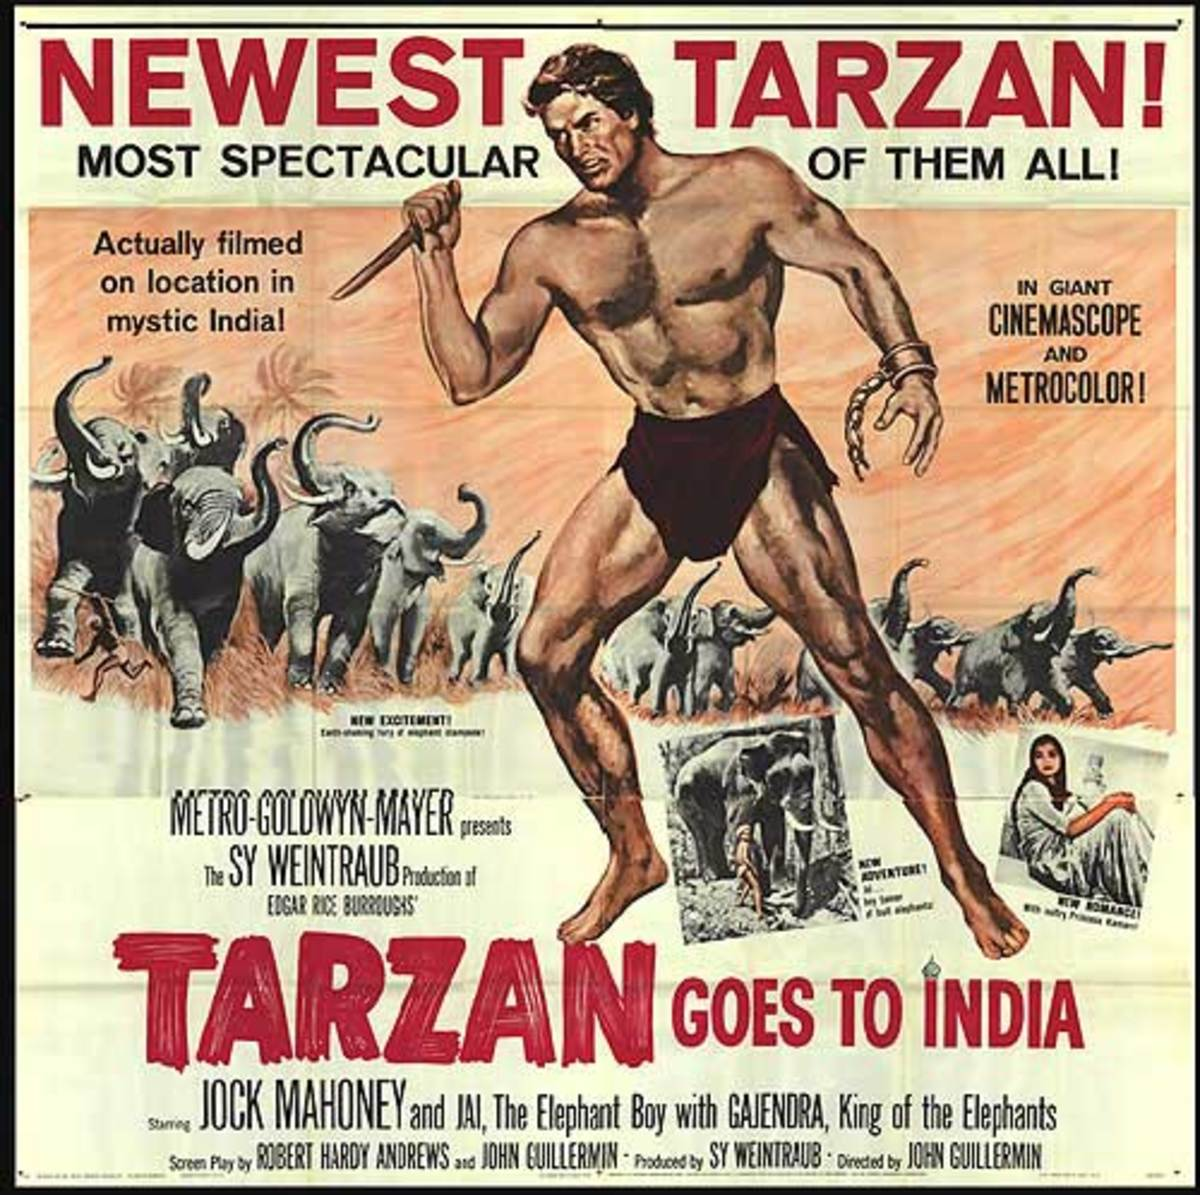 Tarzan Goes to India - poster